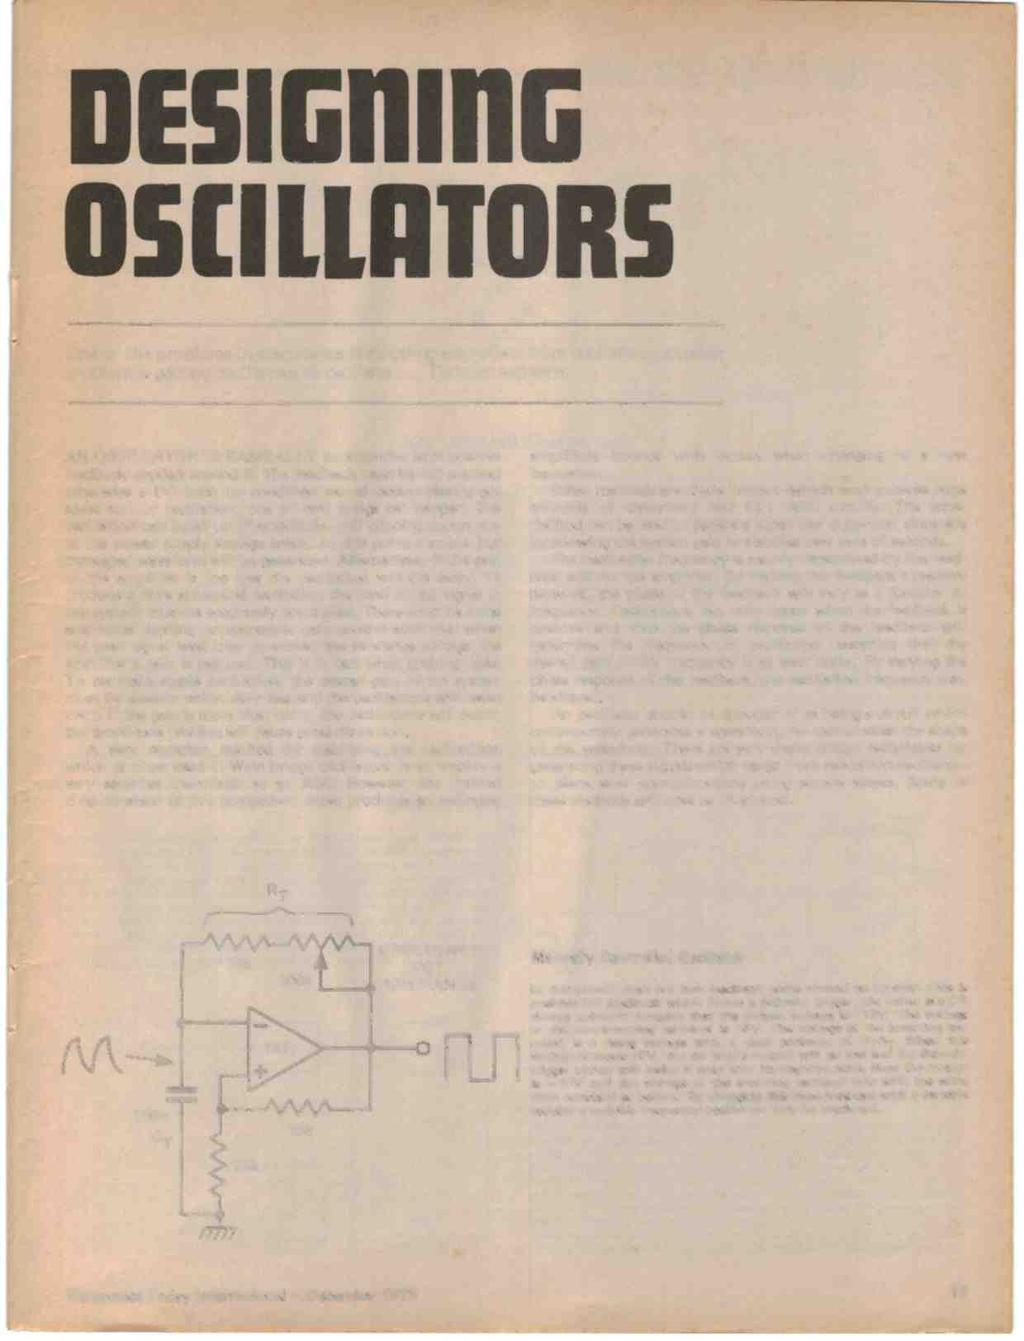 One of the problems in electronics is stopping amplifiers from oscillating, another problem is getting oscillators to oscillate... Tim Orr explains.